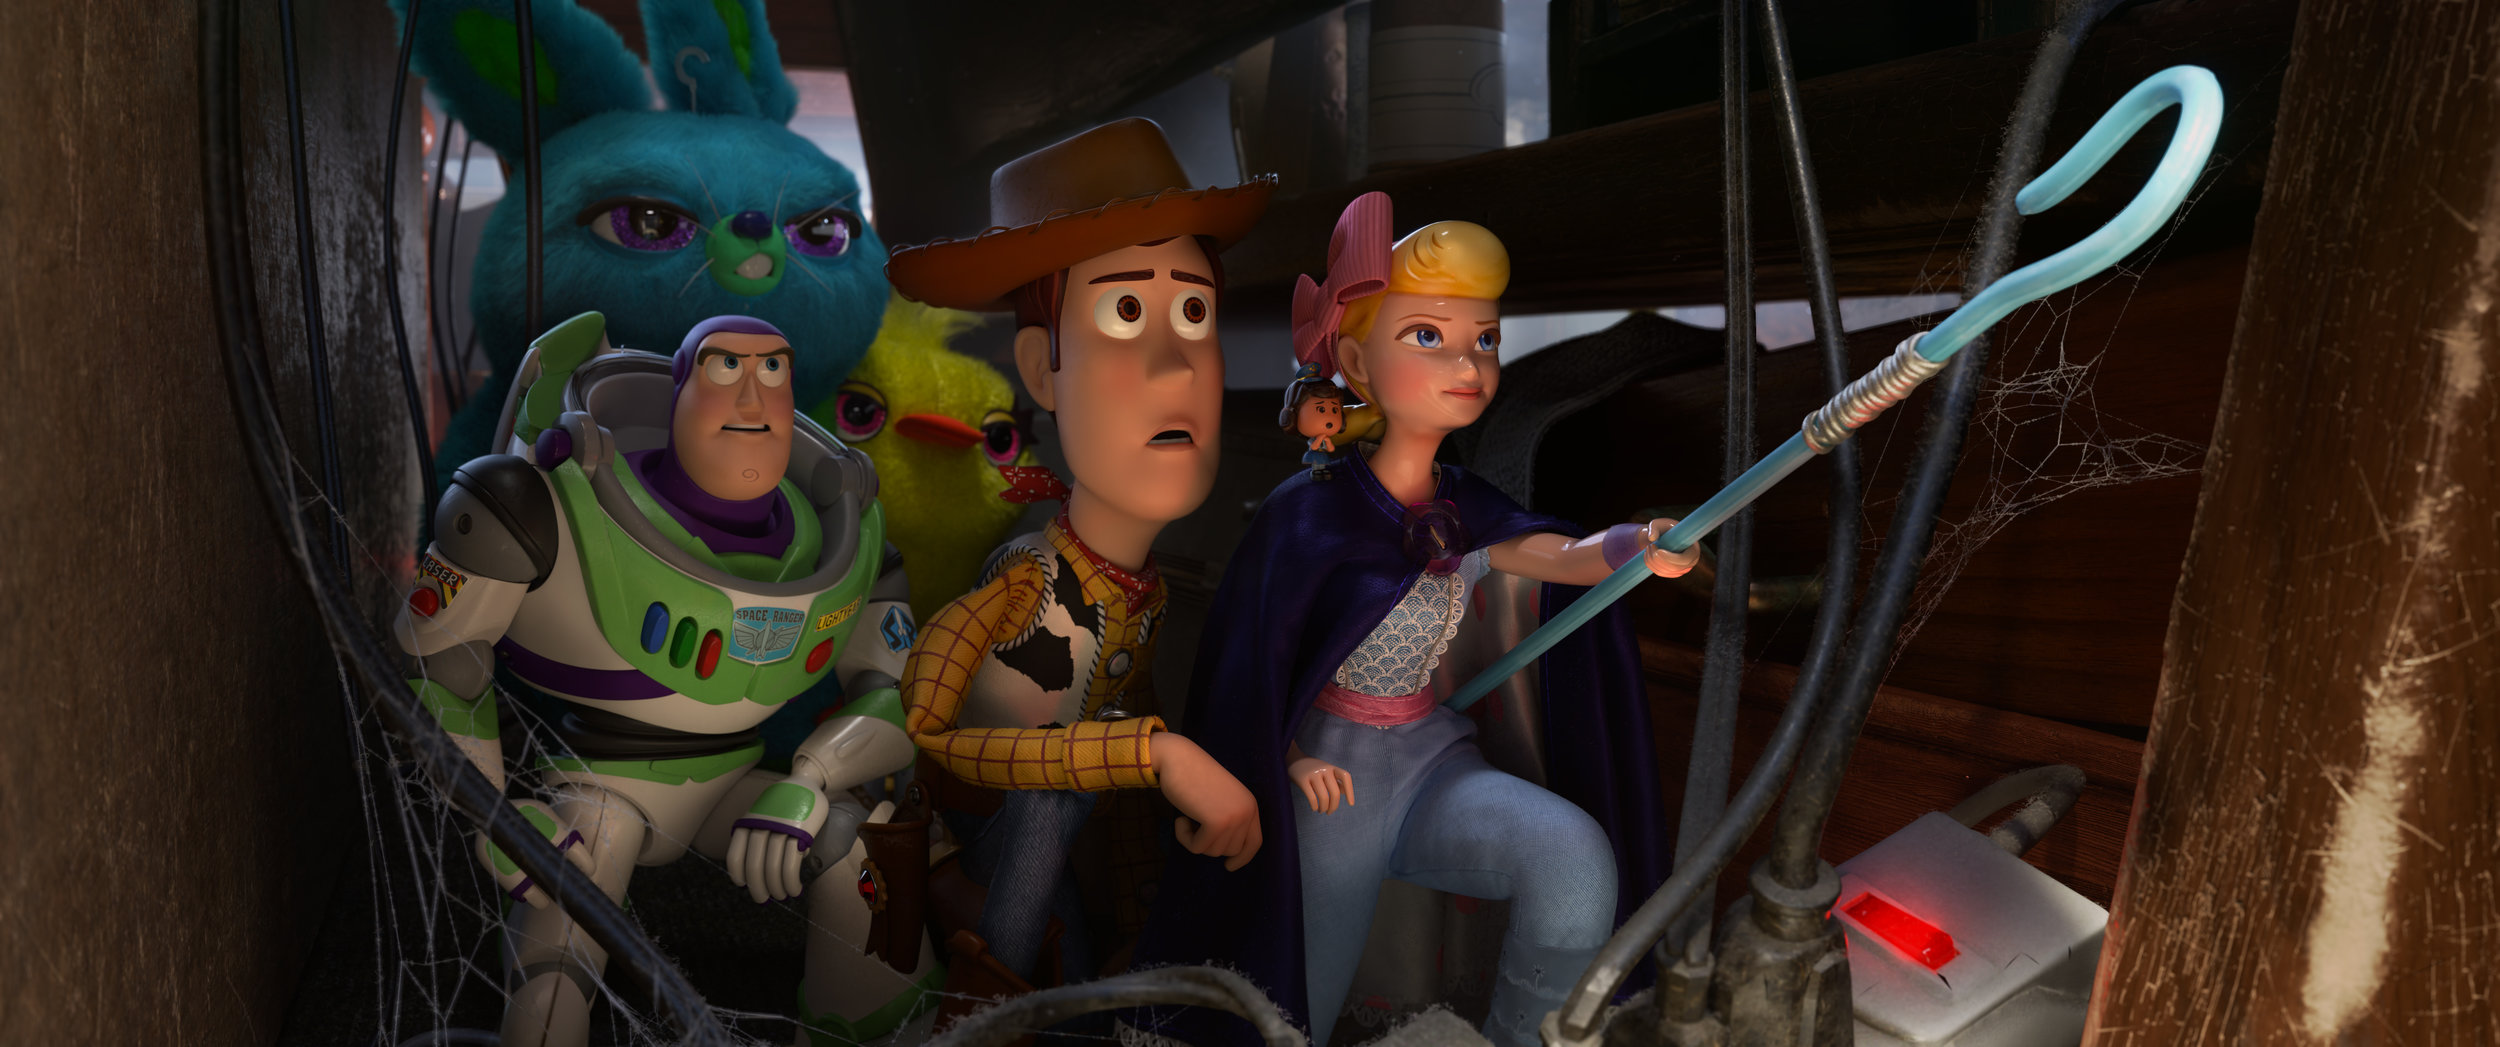 The exquisite lighting of this scene from 'Toy Story 4' perfectly captures the expressions of playthings looking ahead to a terribly uncertain future.  ( Courtesy photo / Disney/Pixar)